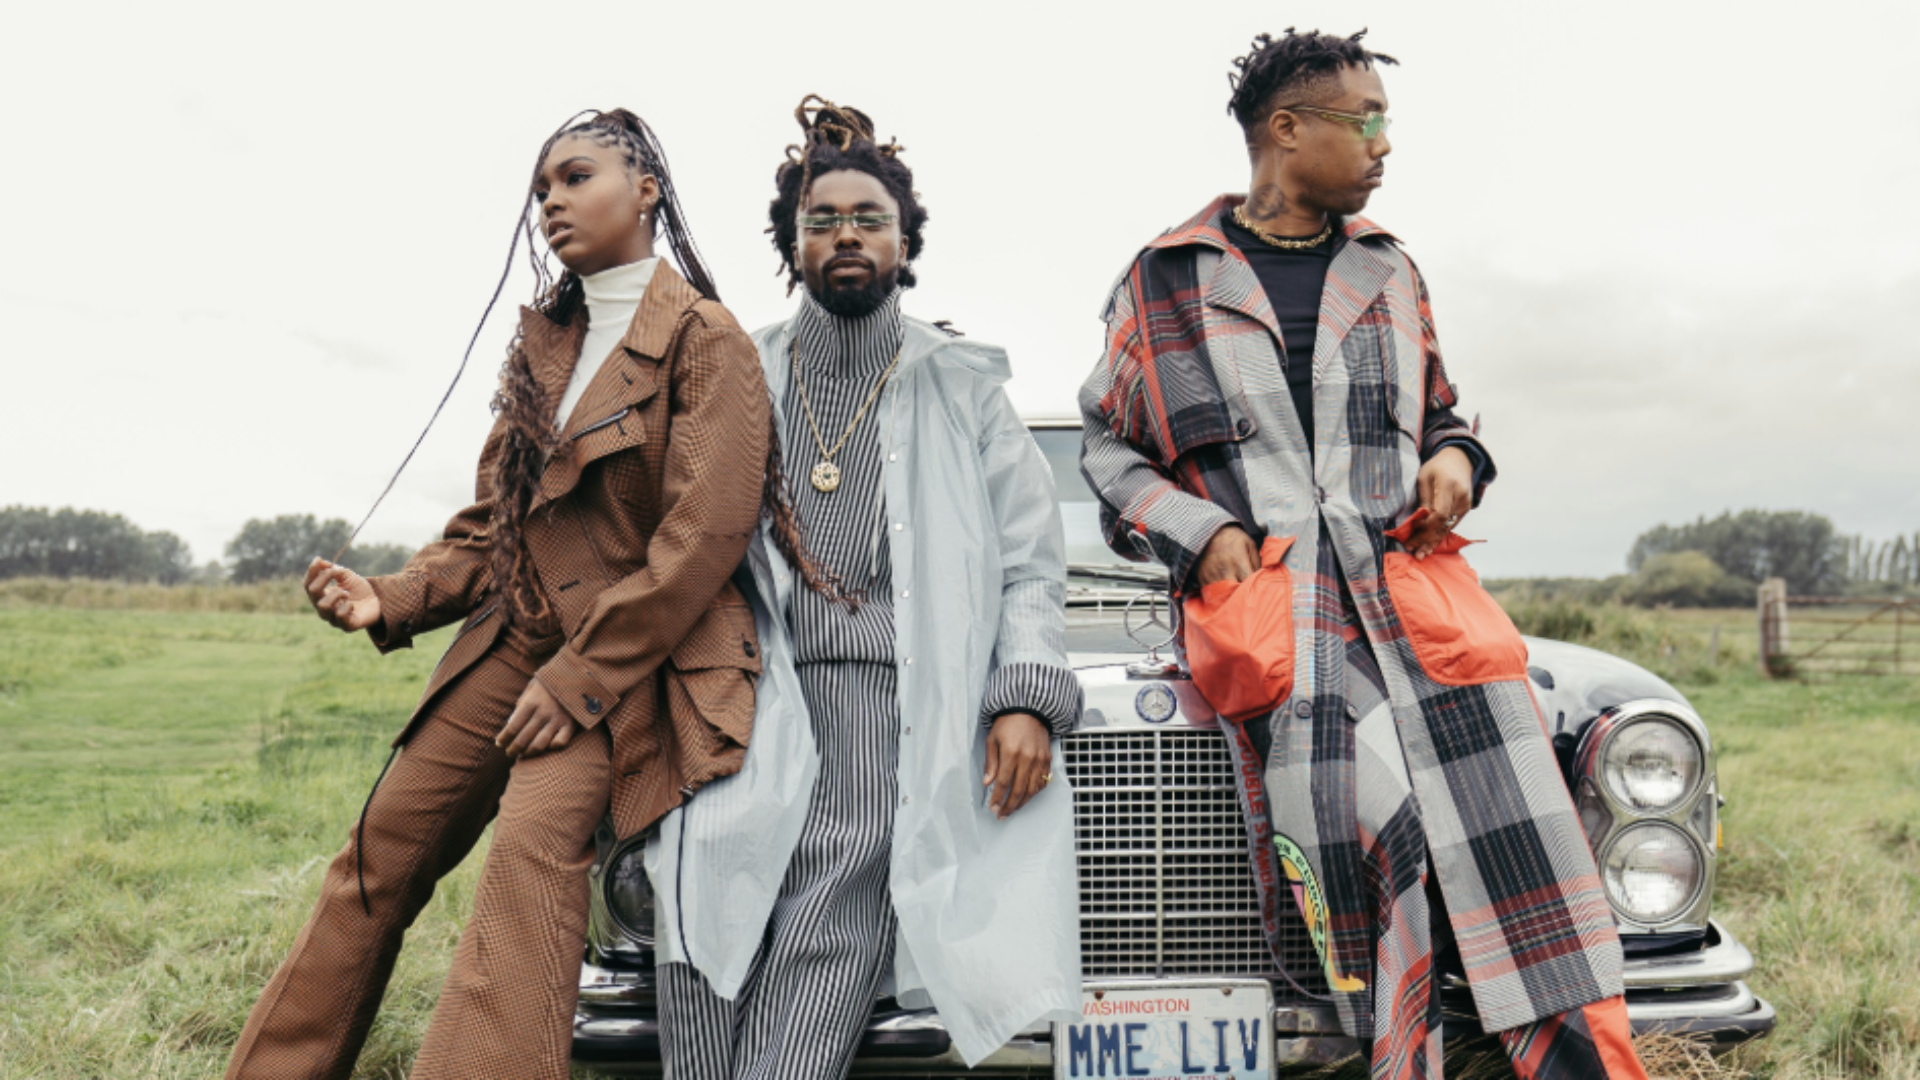 'Queen & Slim' Sound Track Includes New Songs From Lauryn Hill And Megan Thee Stallion